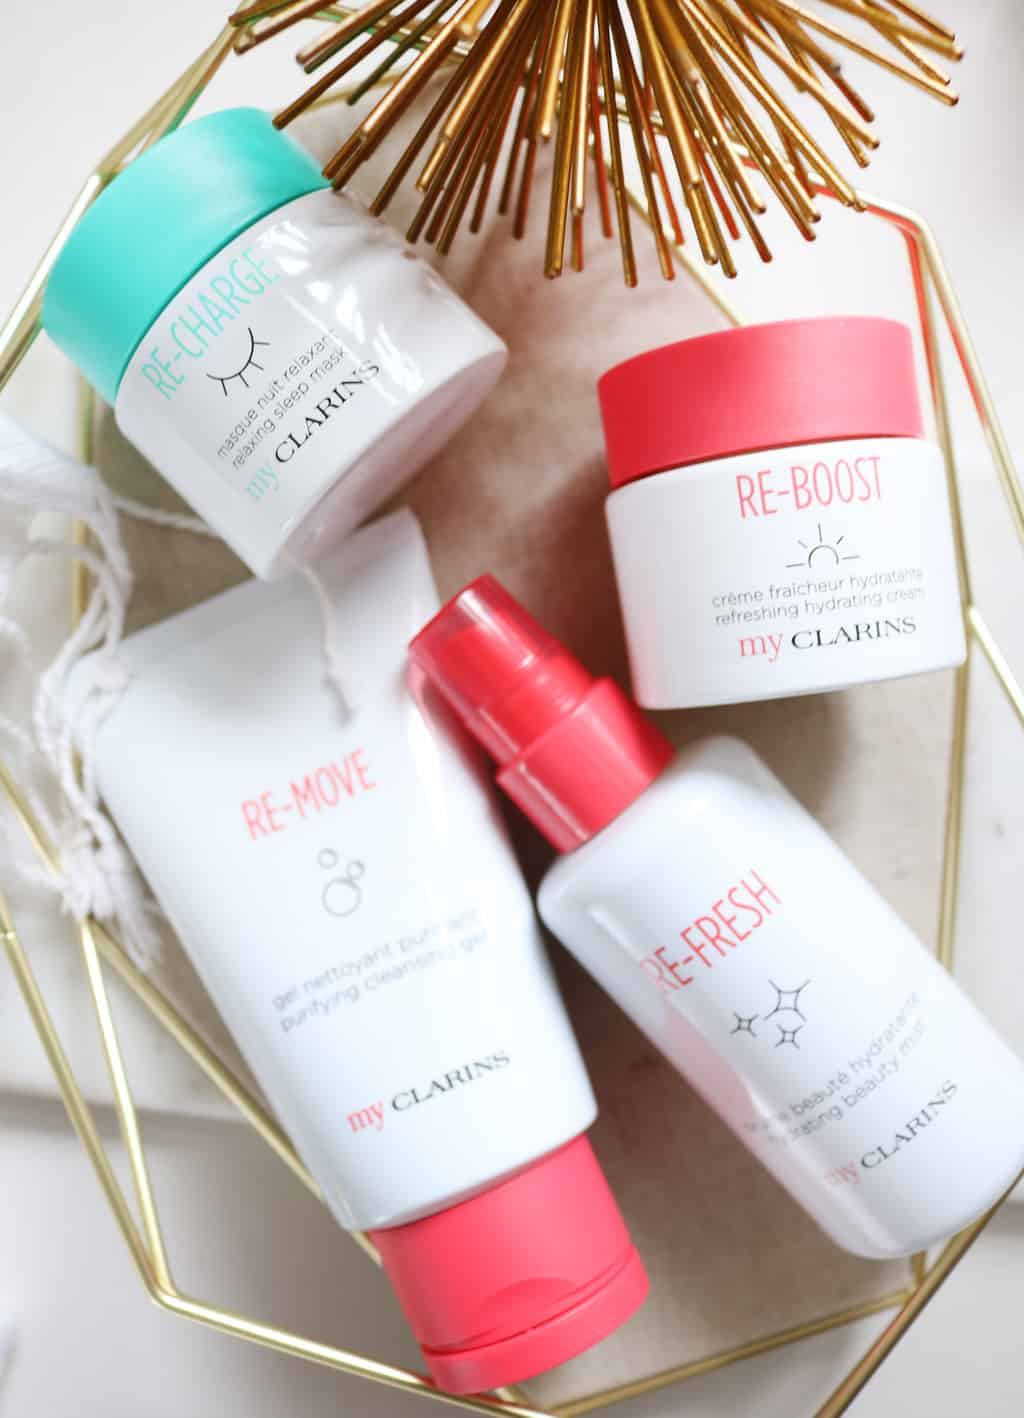 My Clarins | The Skincare Range Geared at Beginners and Millenials